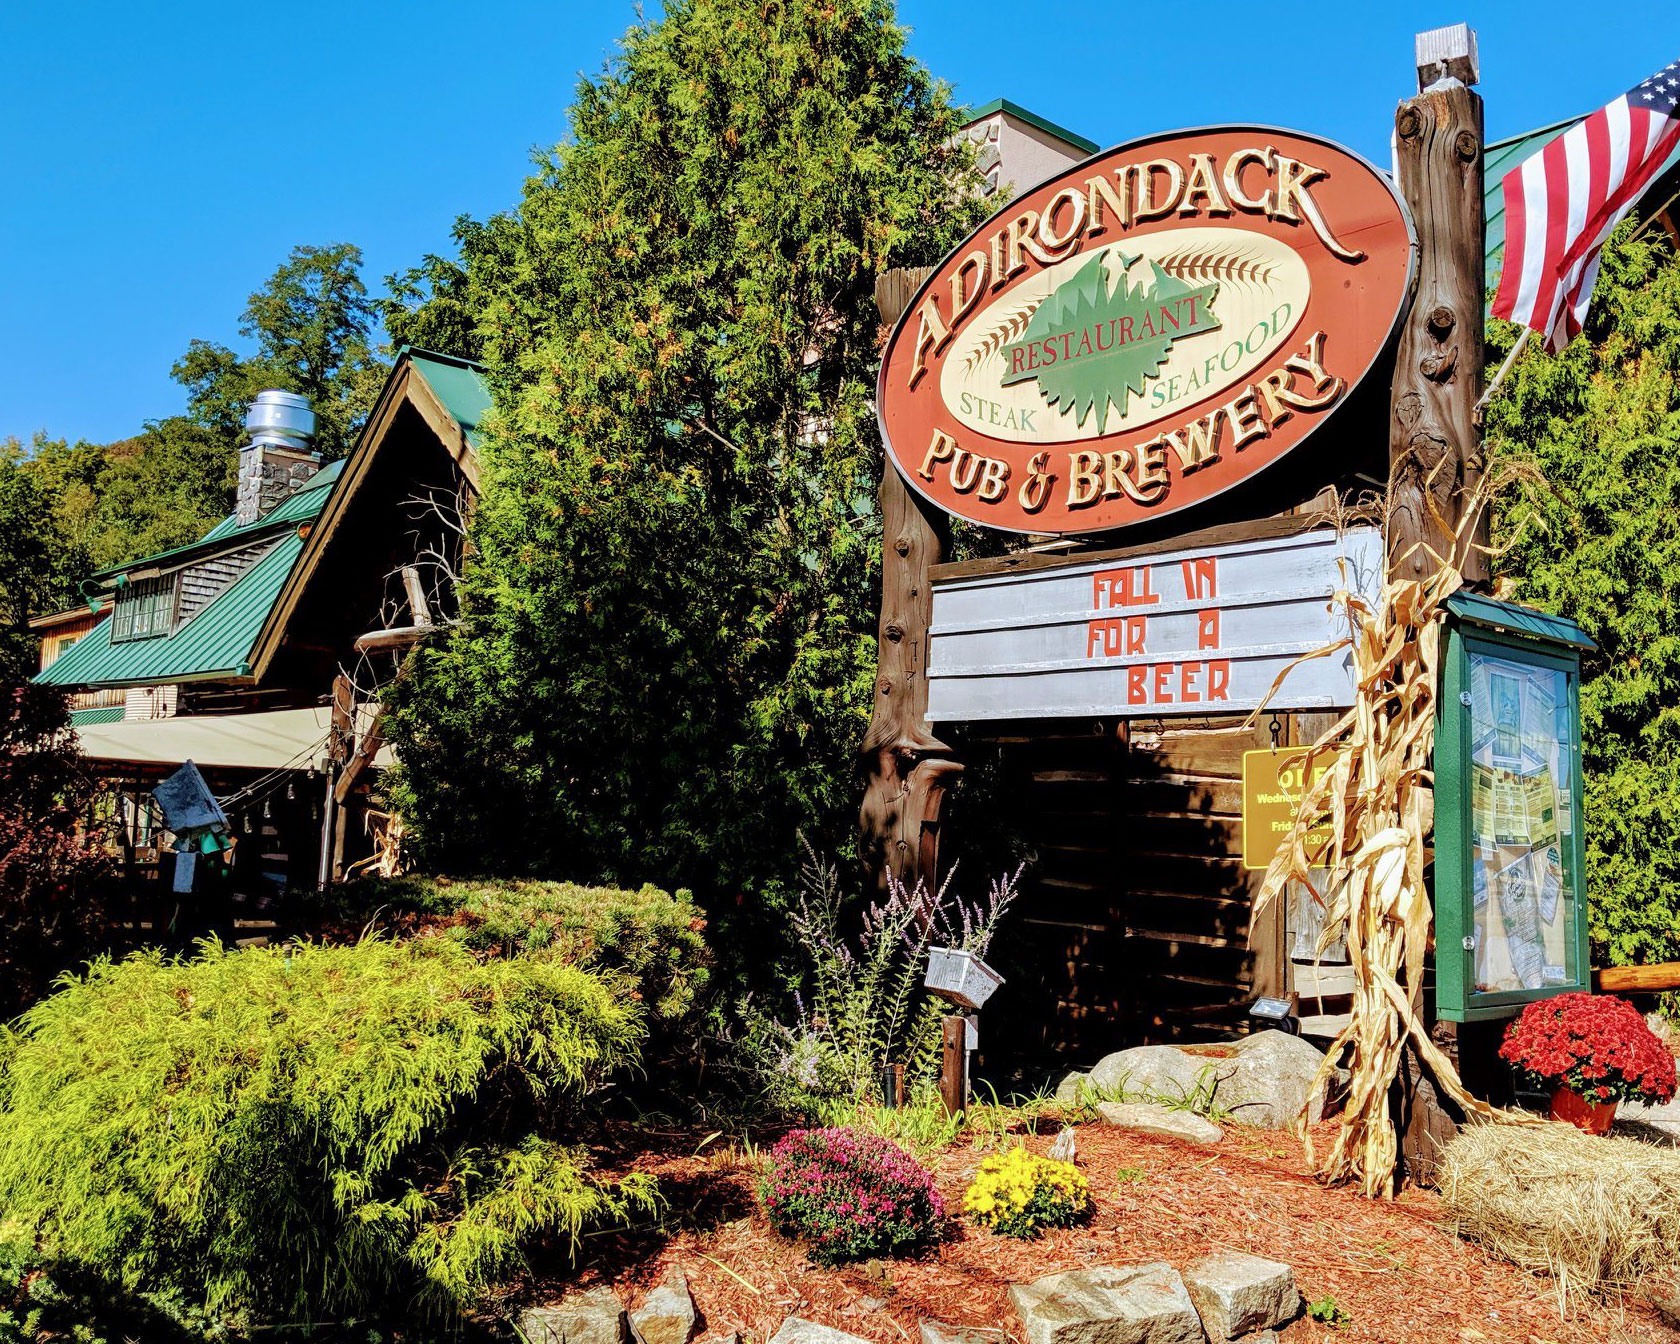 adirondack pub and brewery sign in Lake George